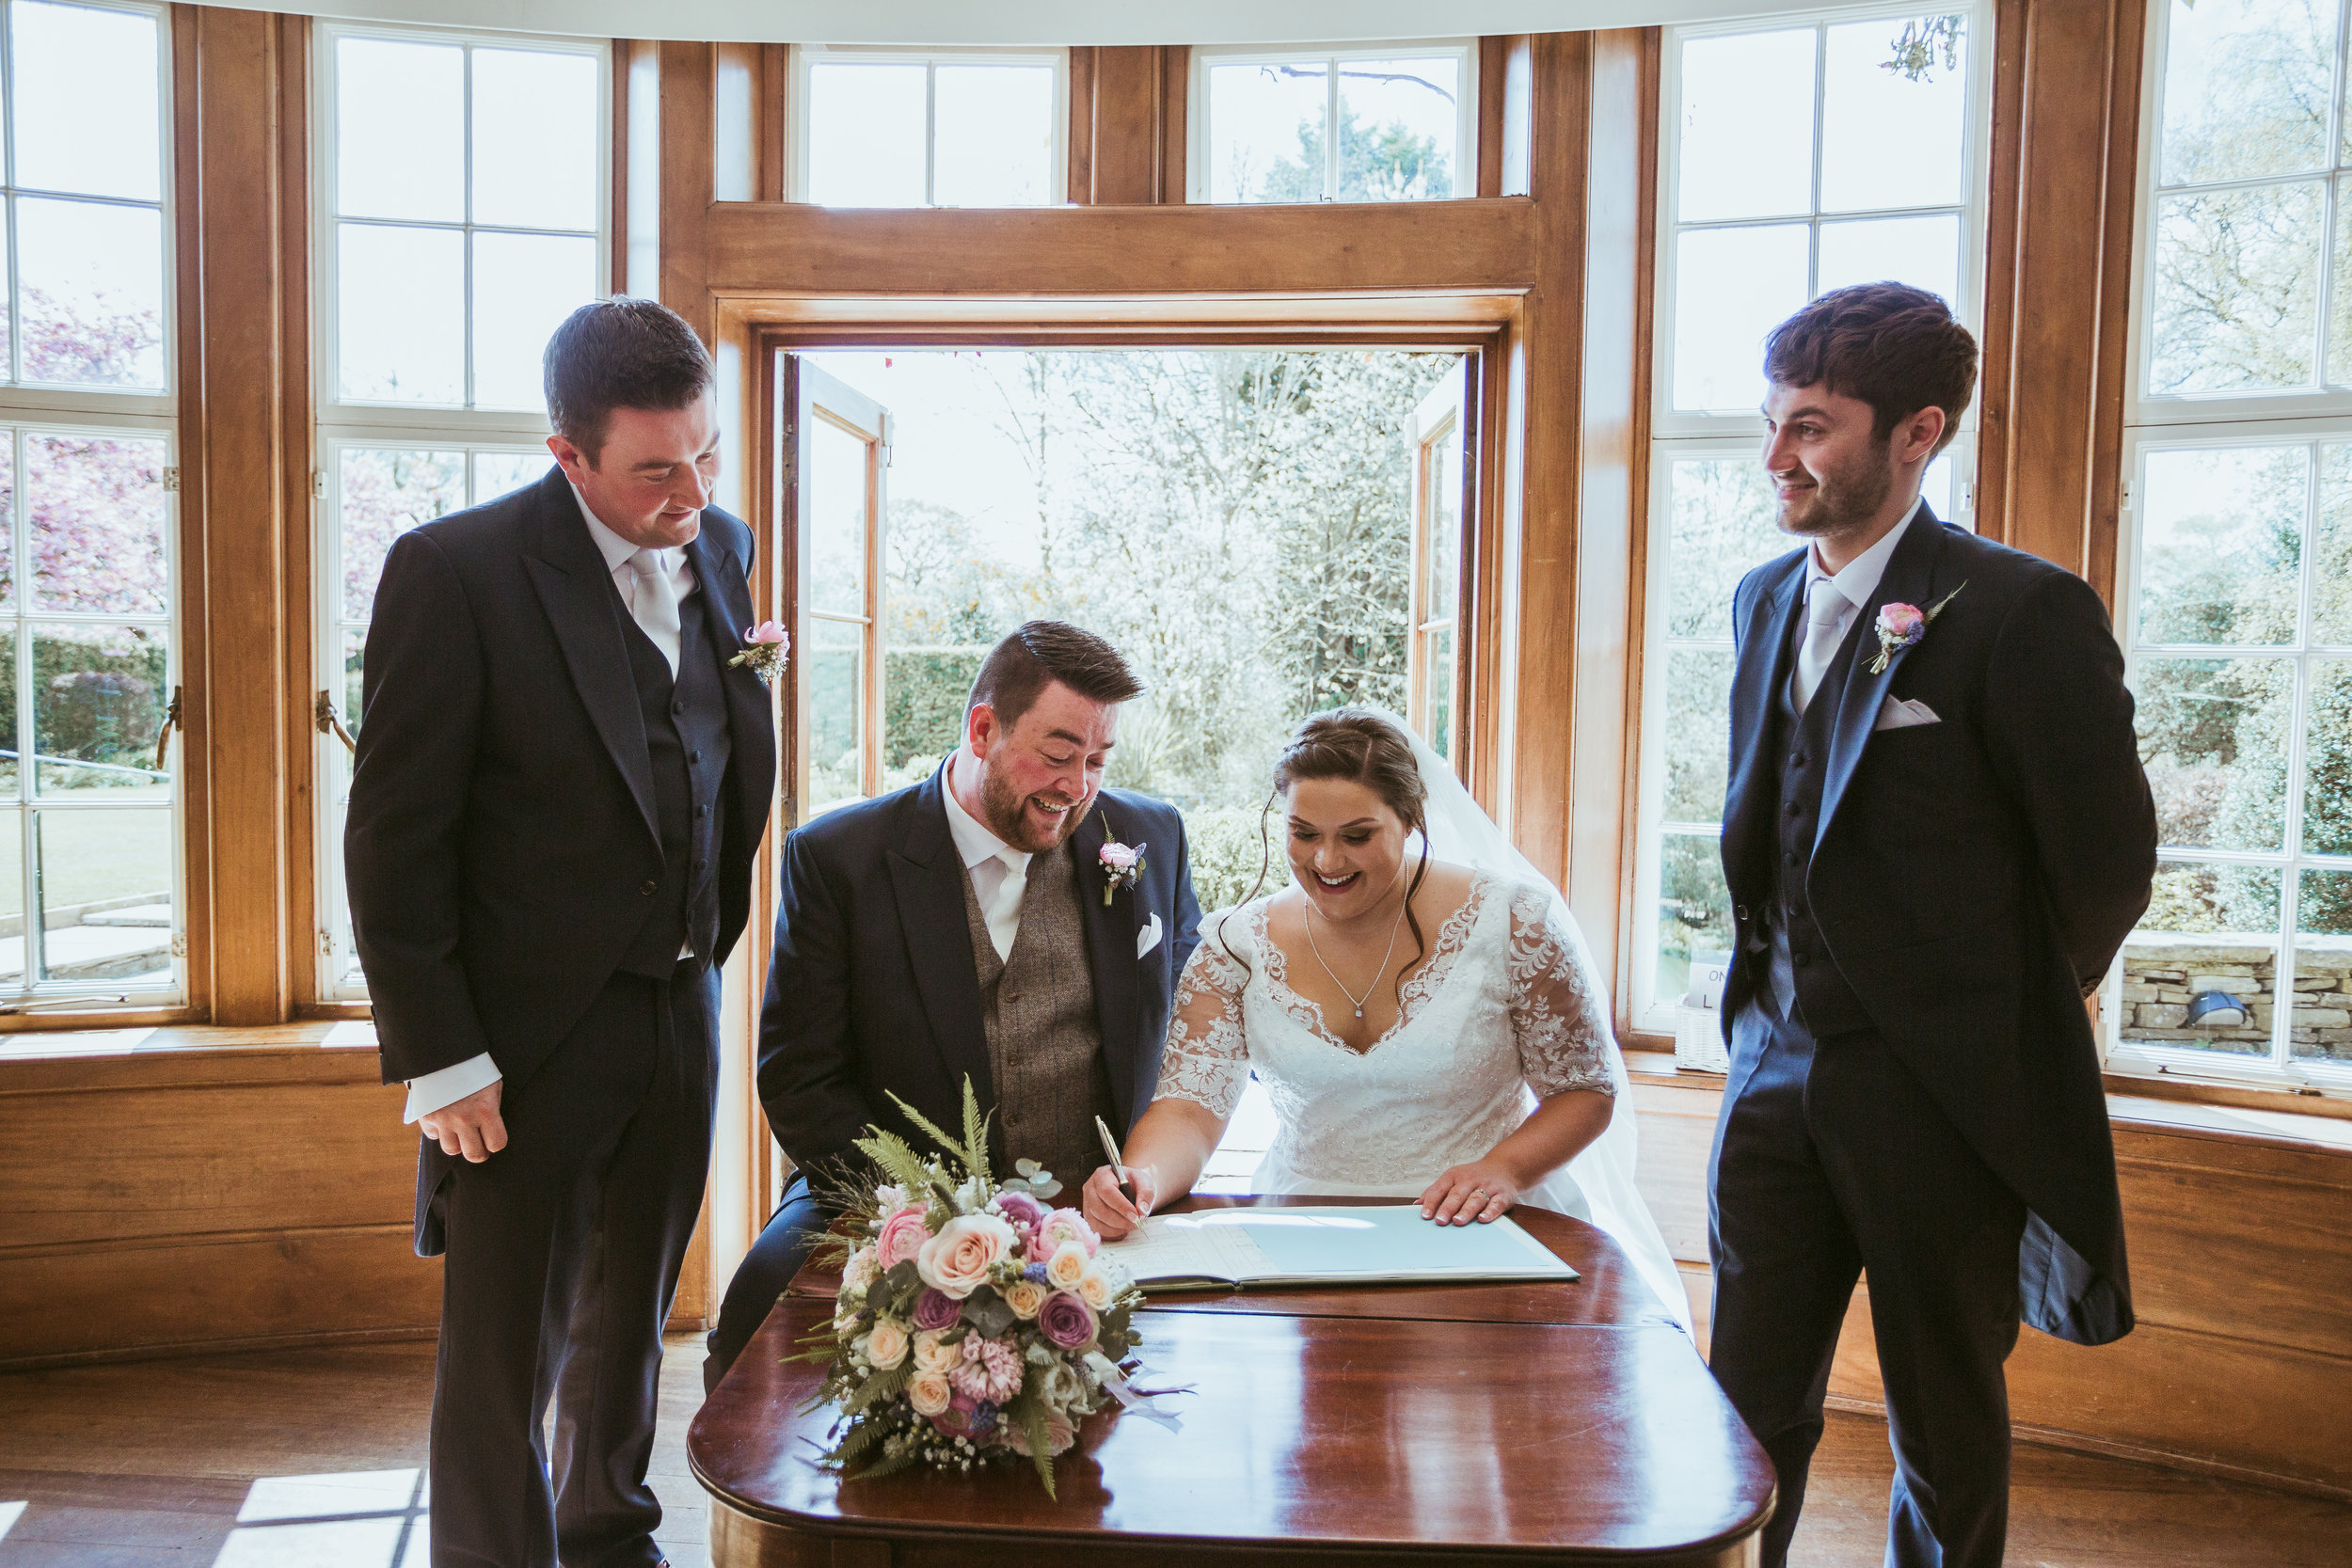 Hilltop Country House Wedding Photography - 42.jpg